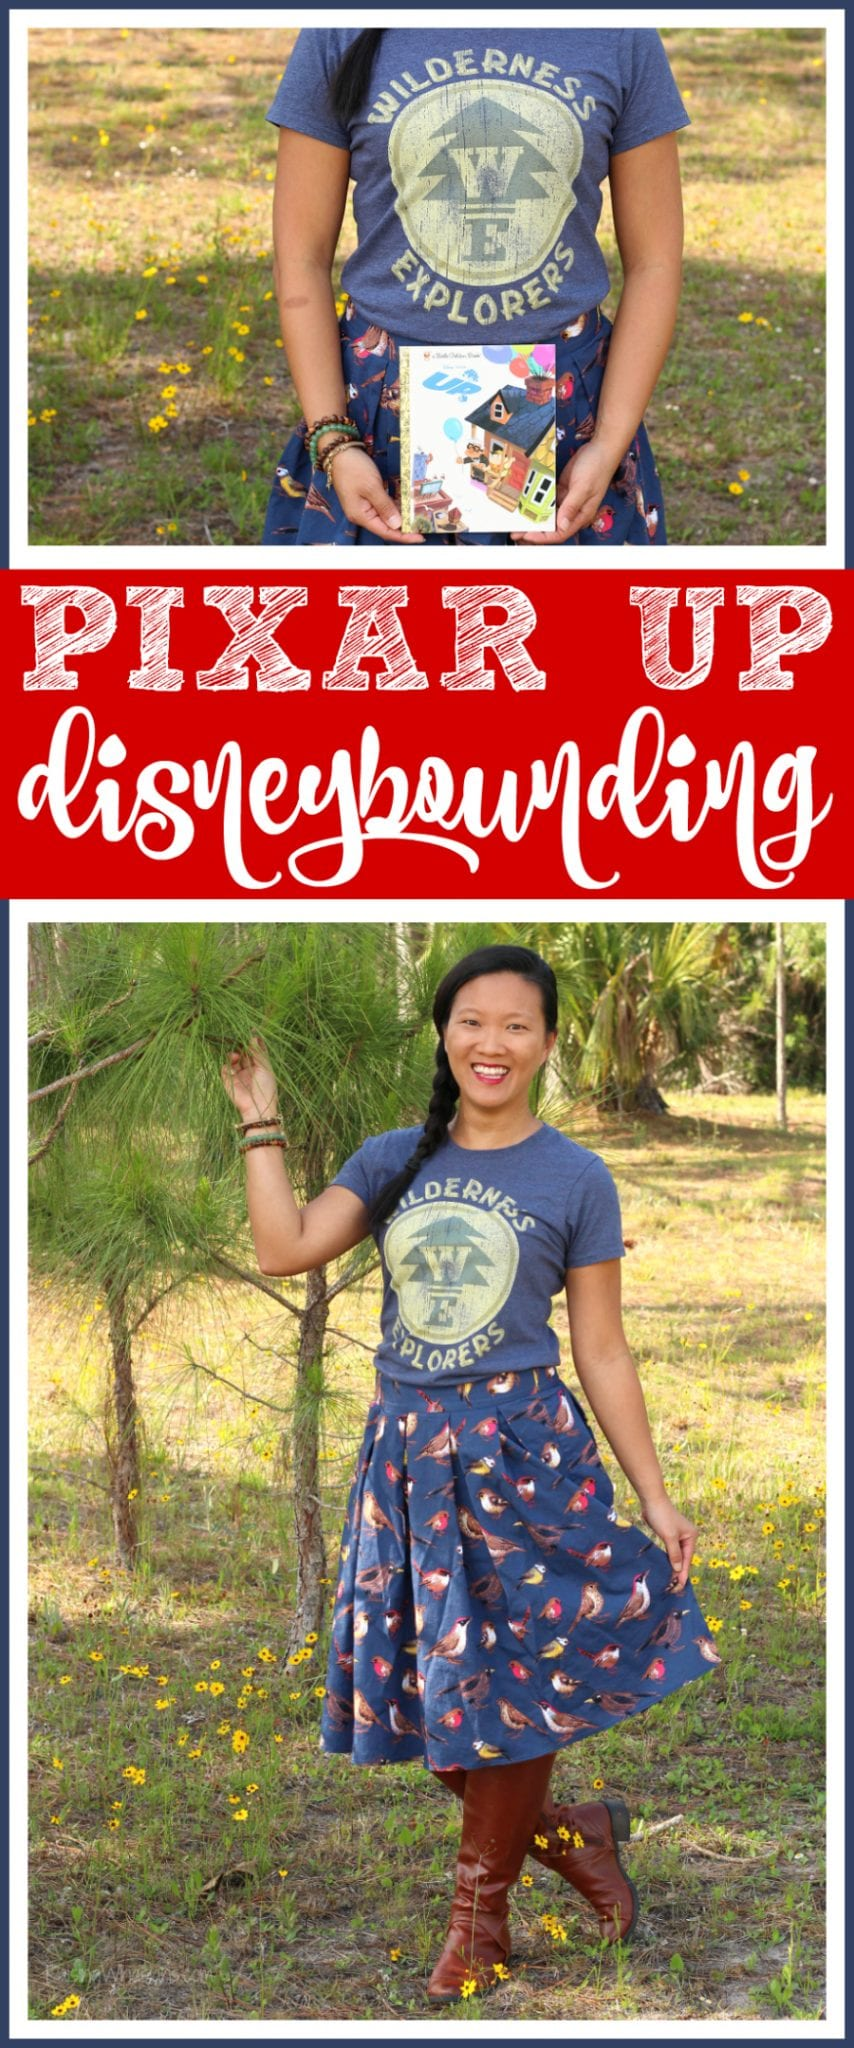 Disney Pixar up disneybounding